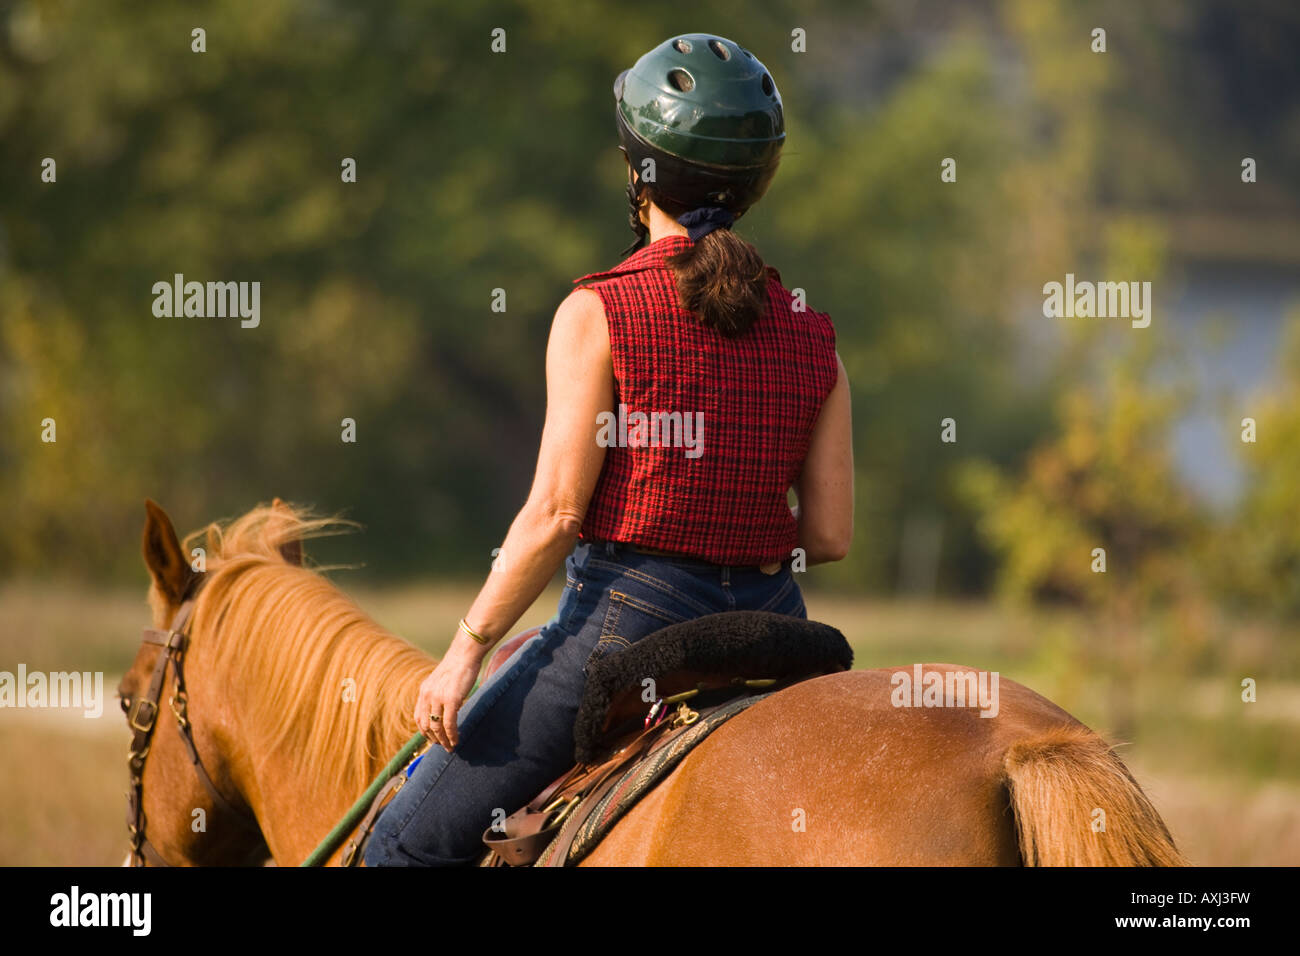 ILLINOIS Woman riding horse on mowed grass trail at Raven Glen forest preserve near lake - Stock Image